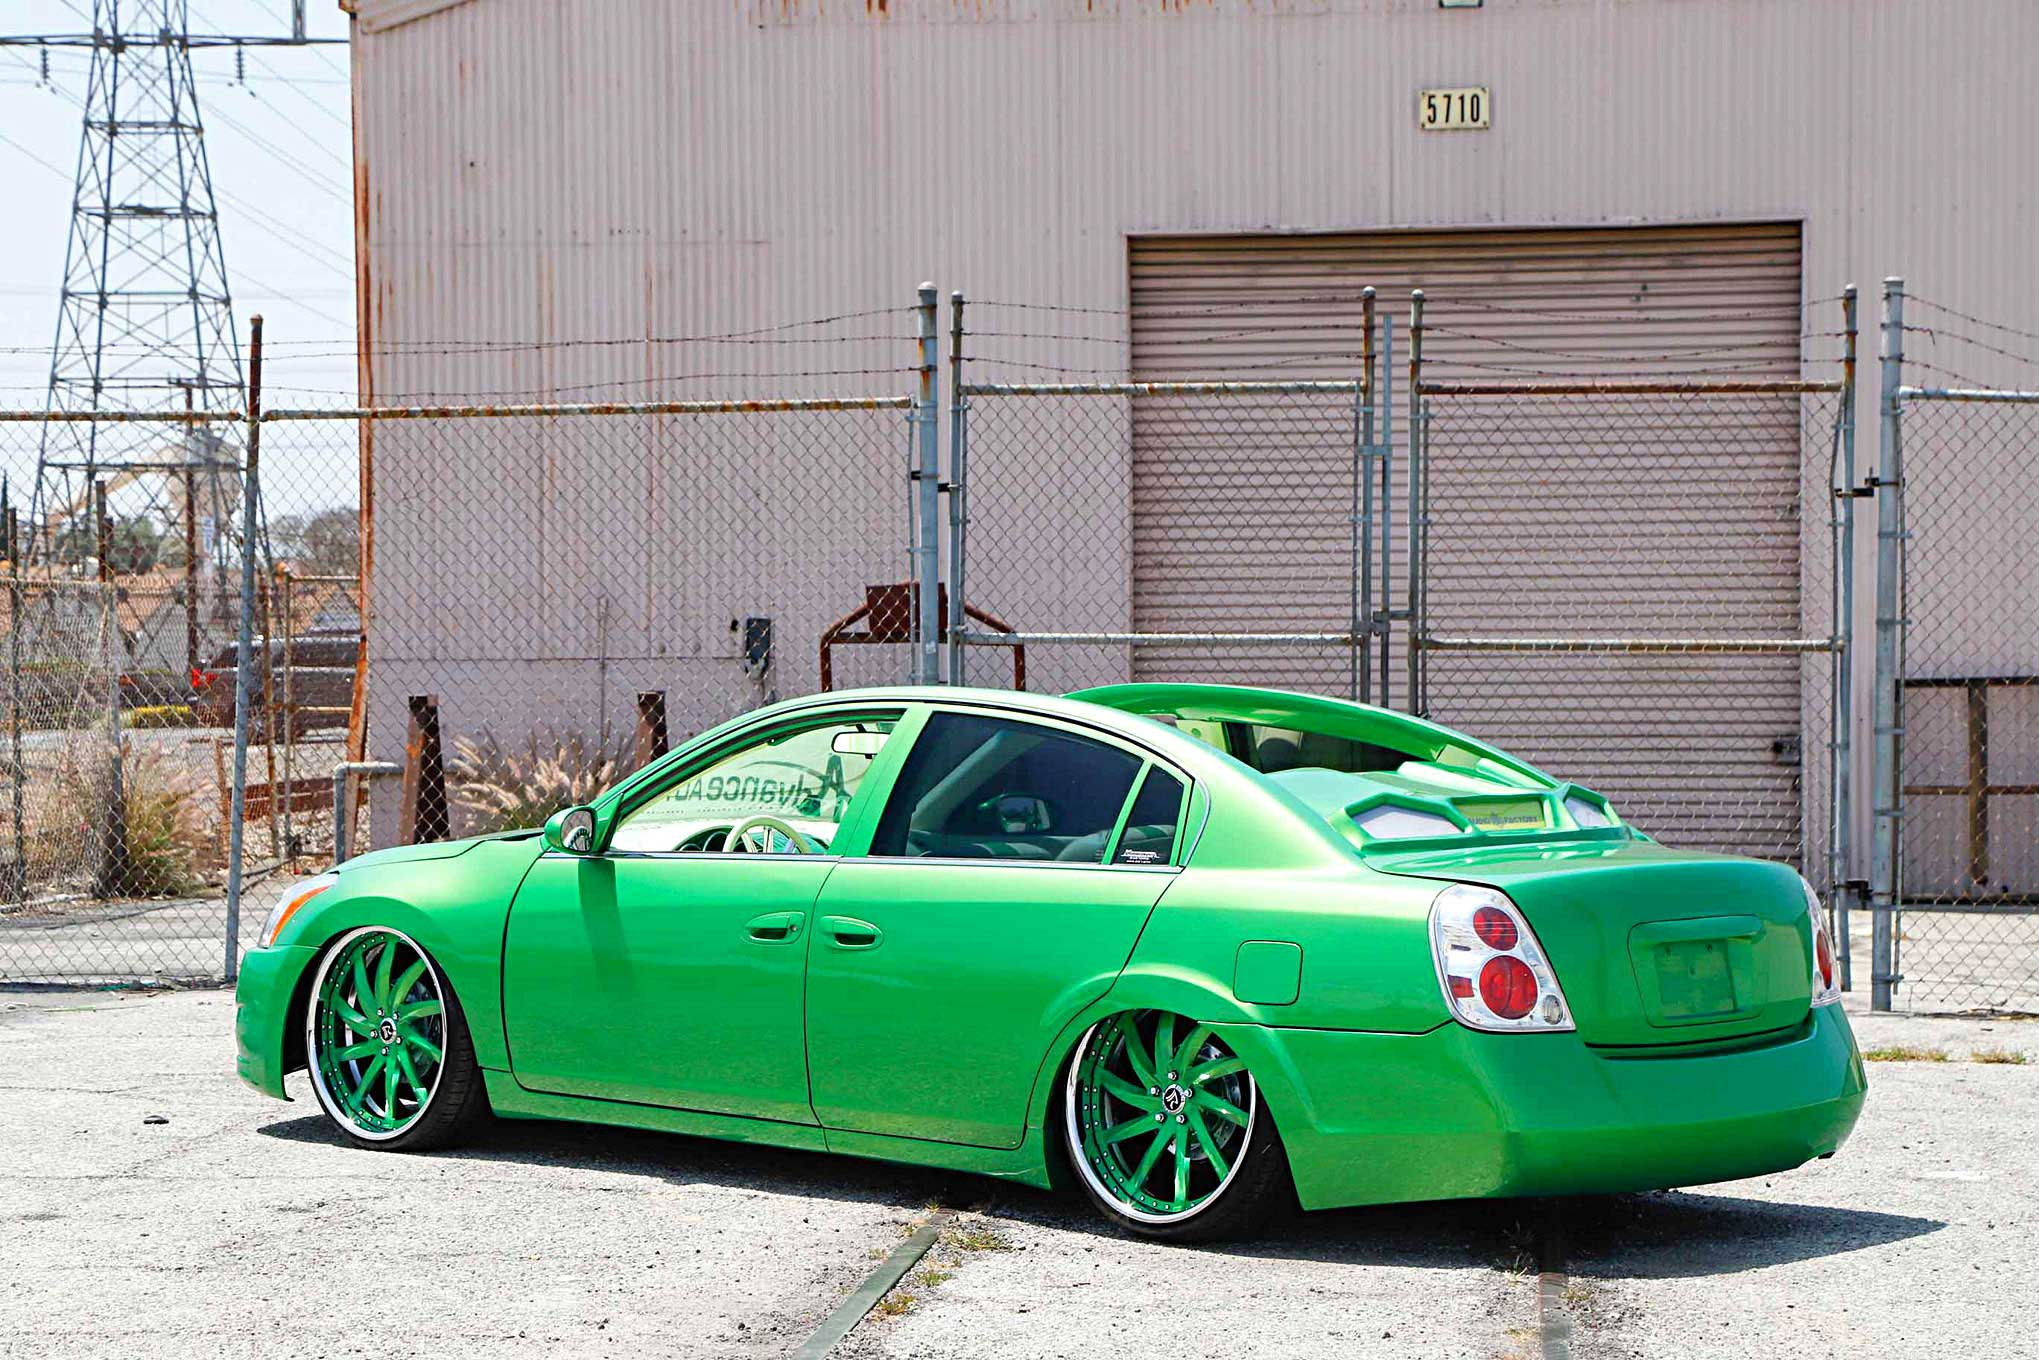 2005 nissan altima rear driver side view lowrider